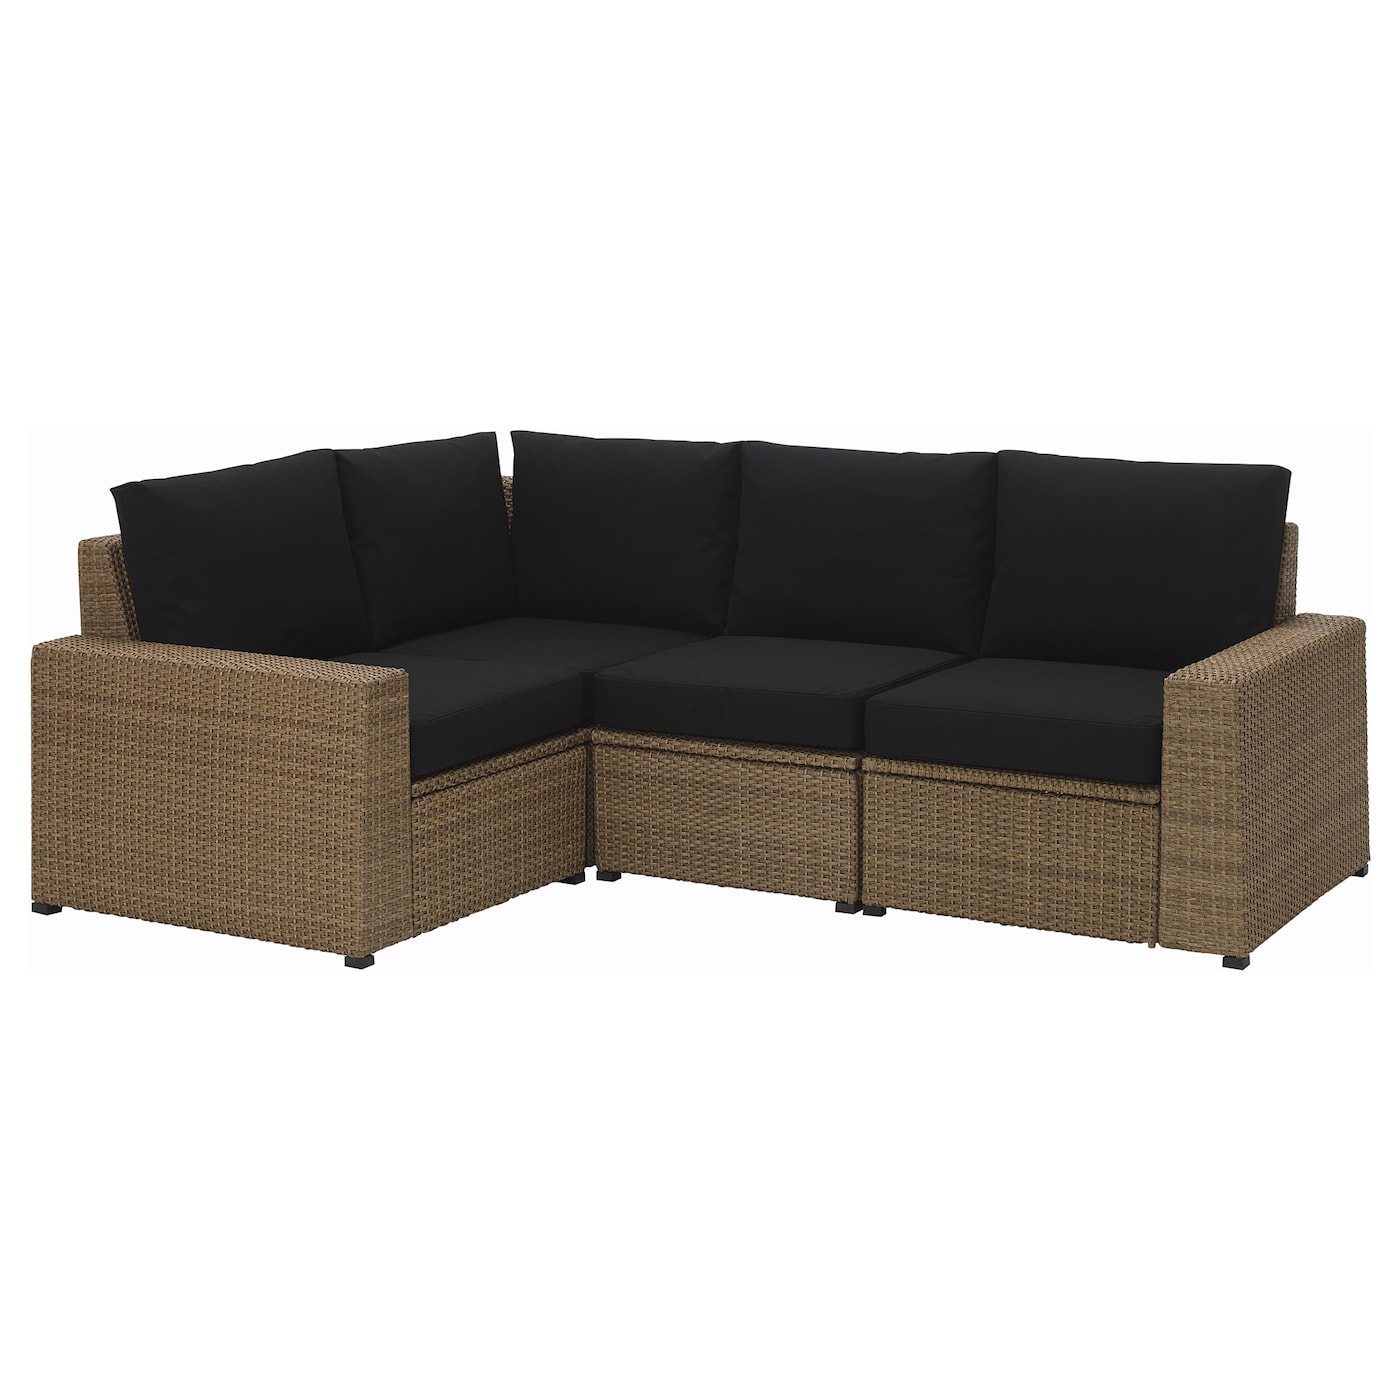 IKEA SOLLERÖN corner sofa 3+1, outdoor Easy to keep clean – just wipe with a damp cloth.